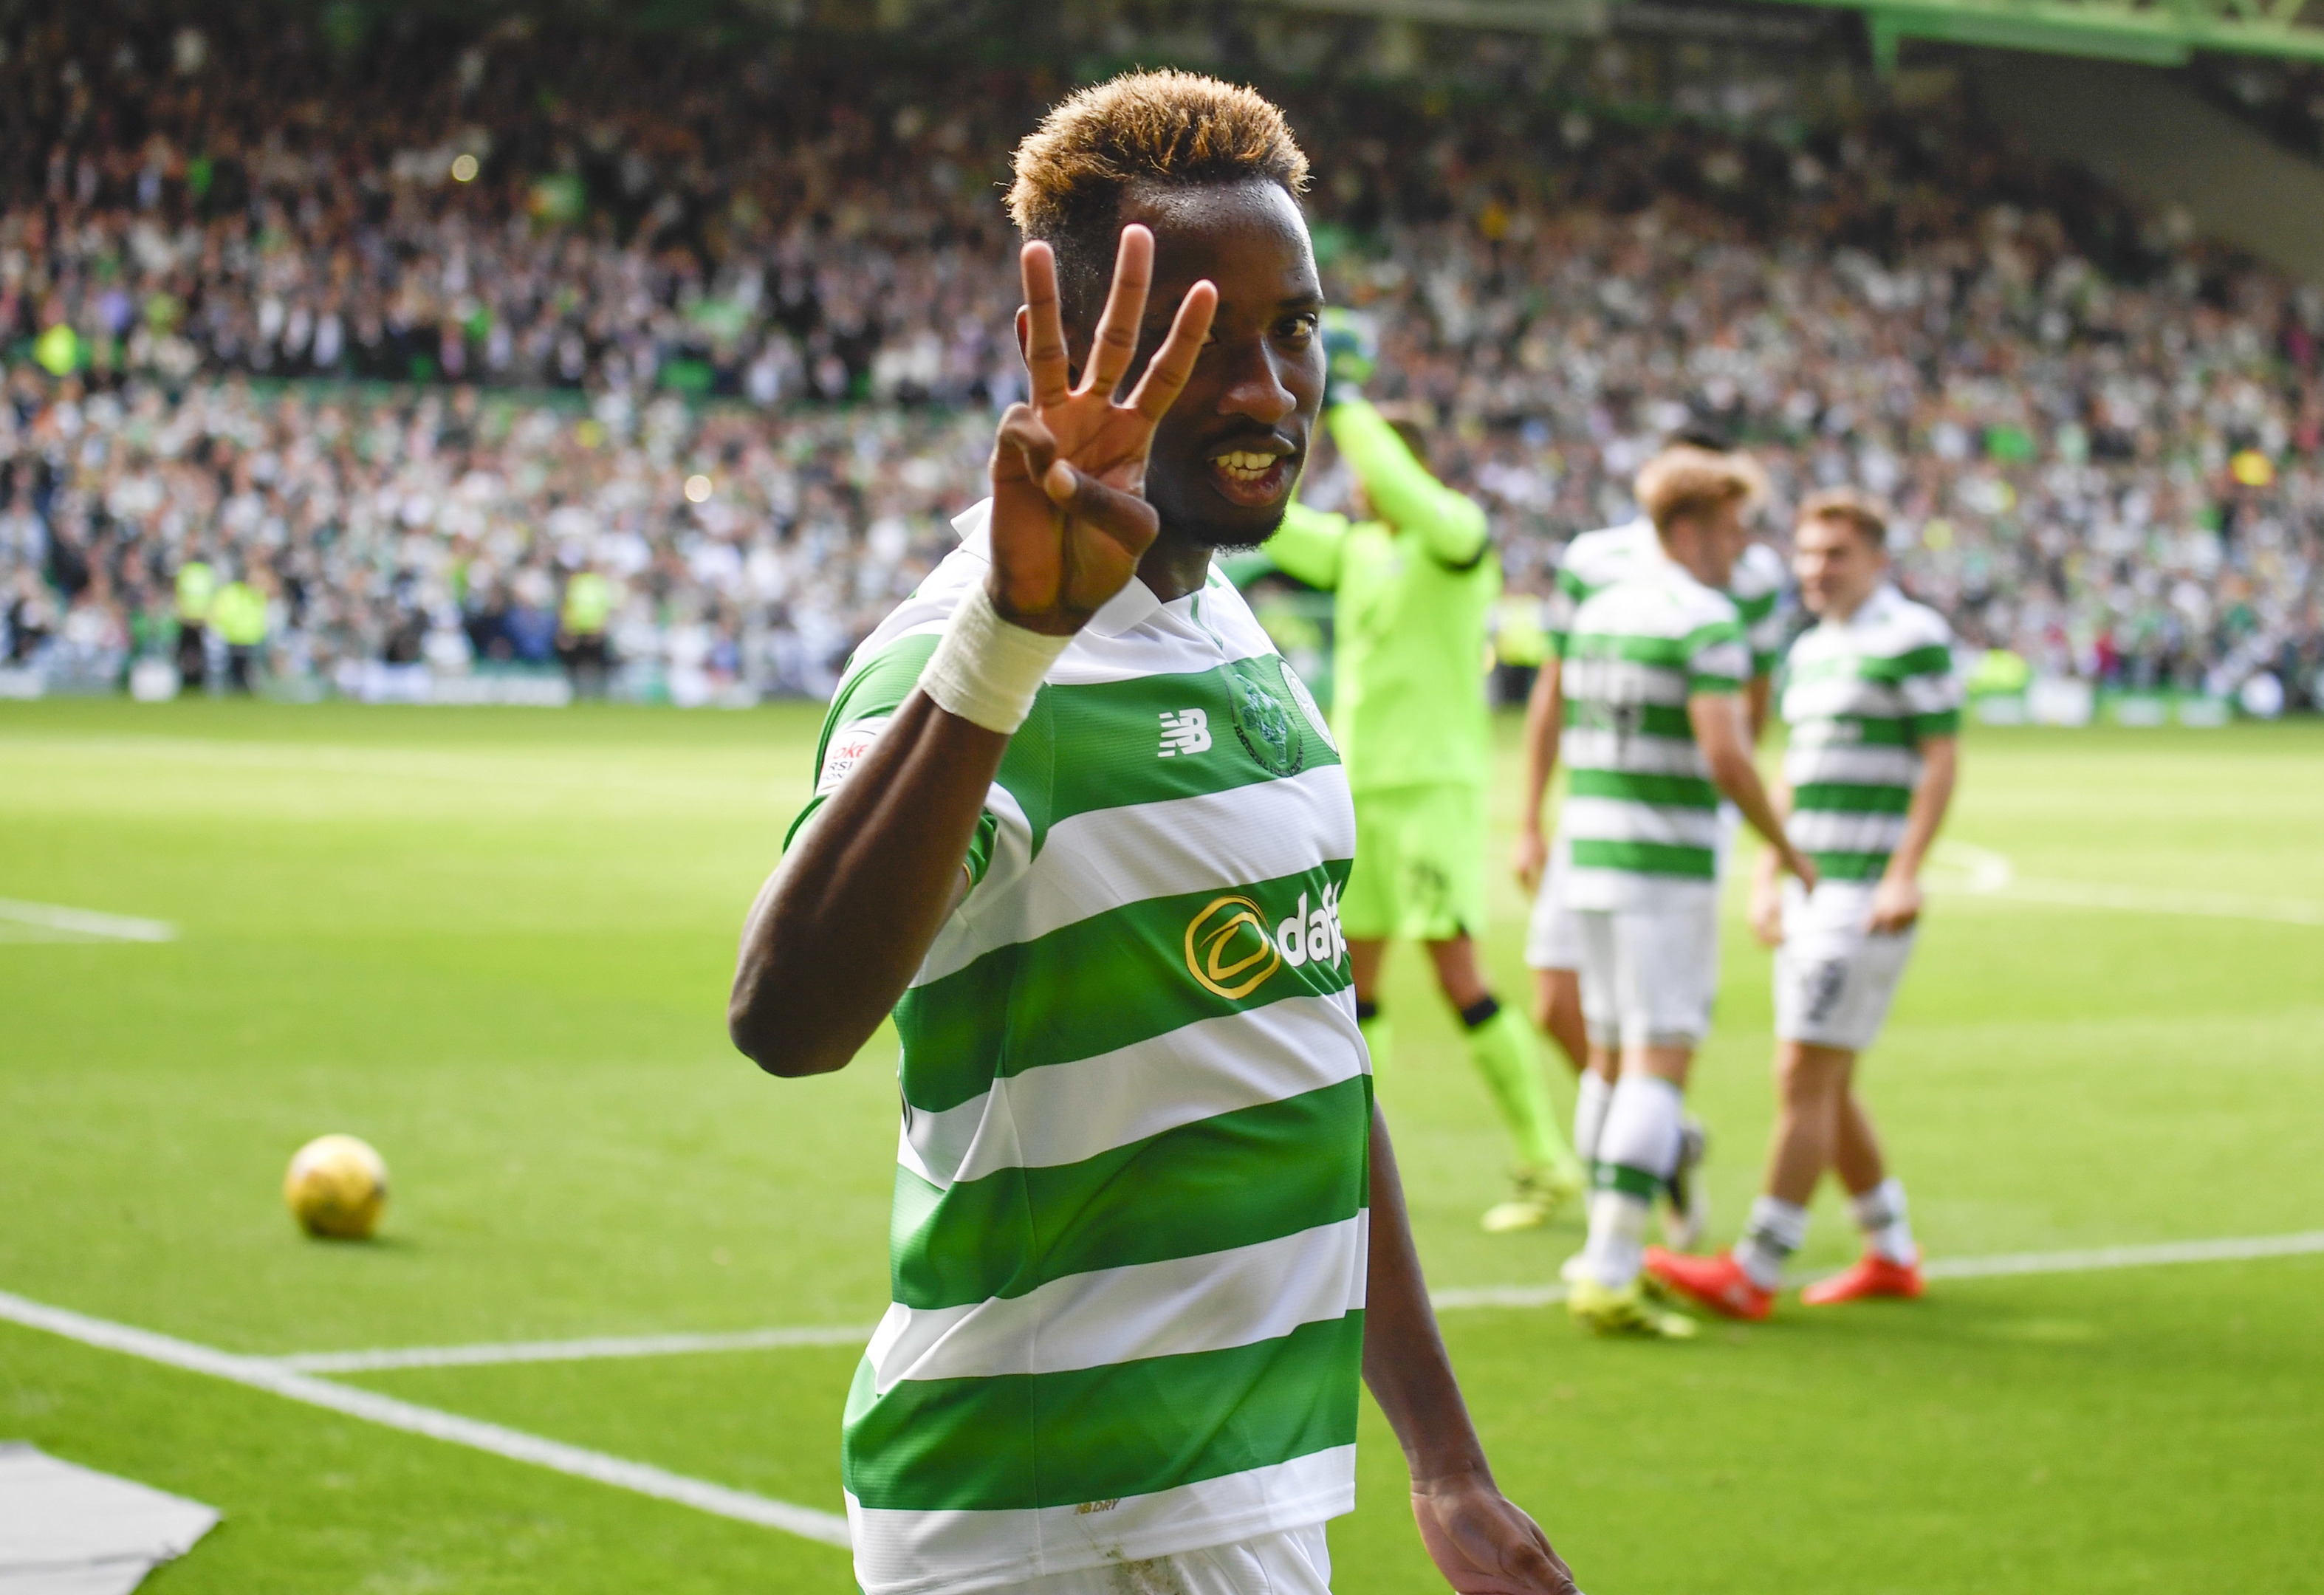 Celtic's Moussa Dembele celebrates at full-time (SNS Group / Rob Casey)